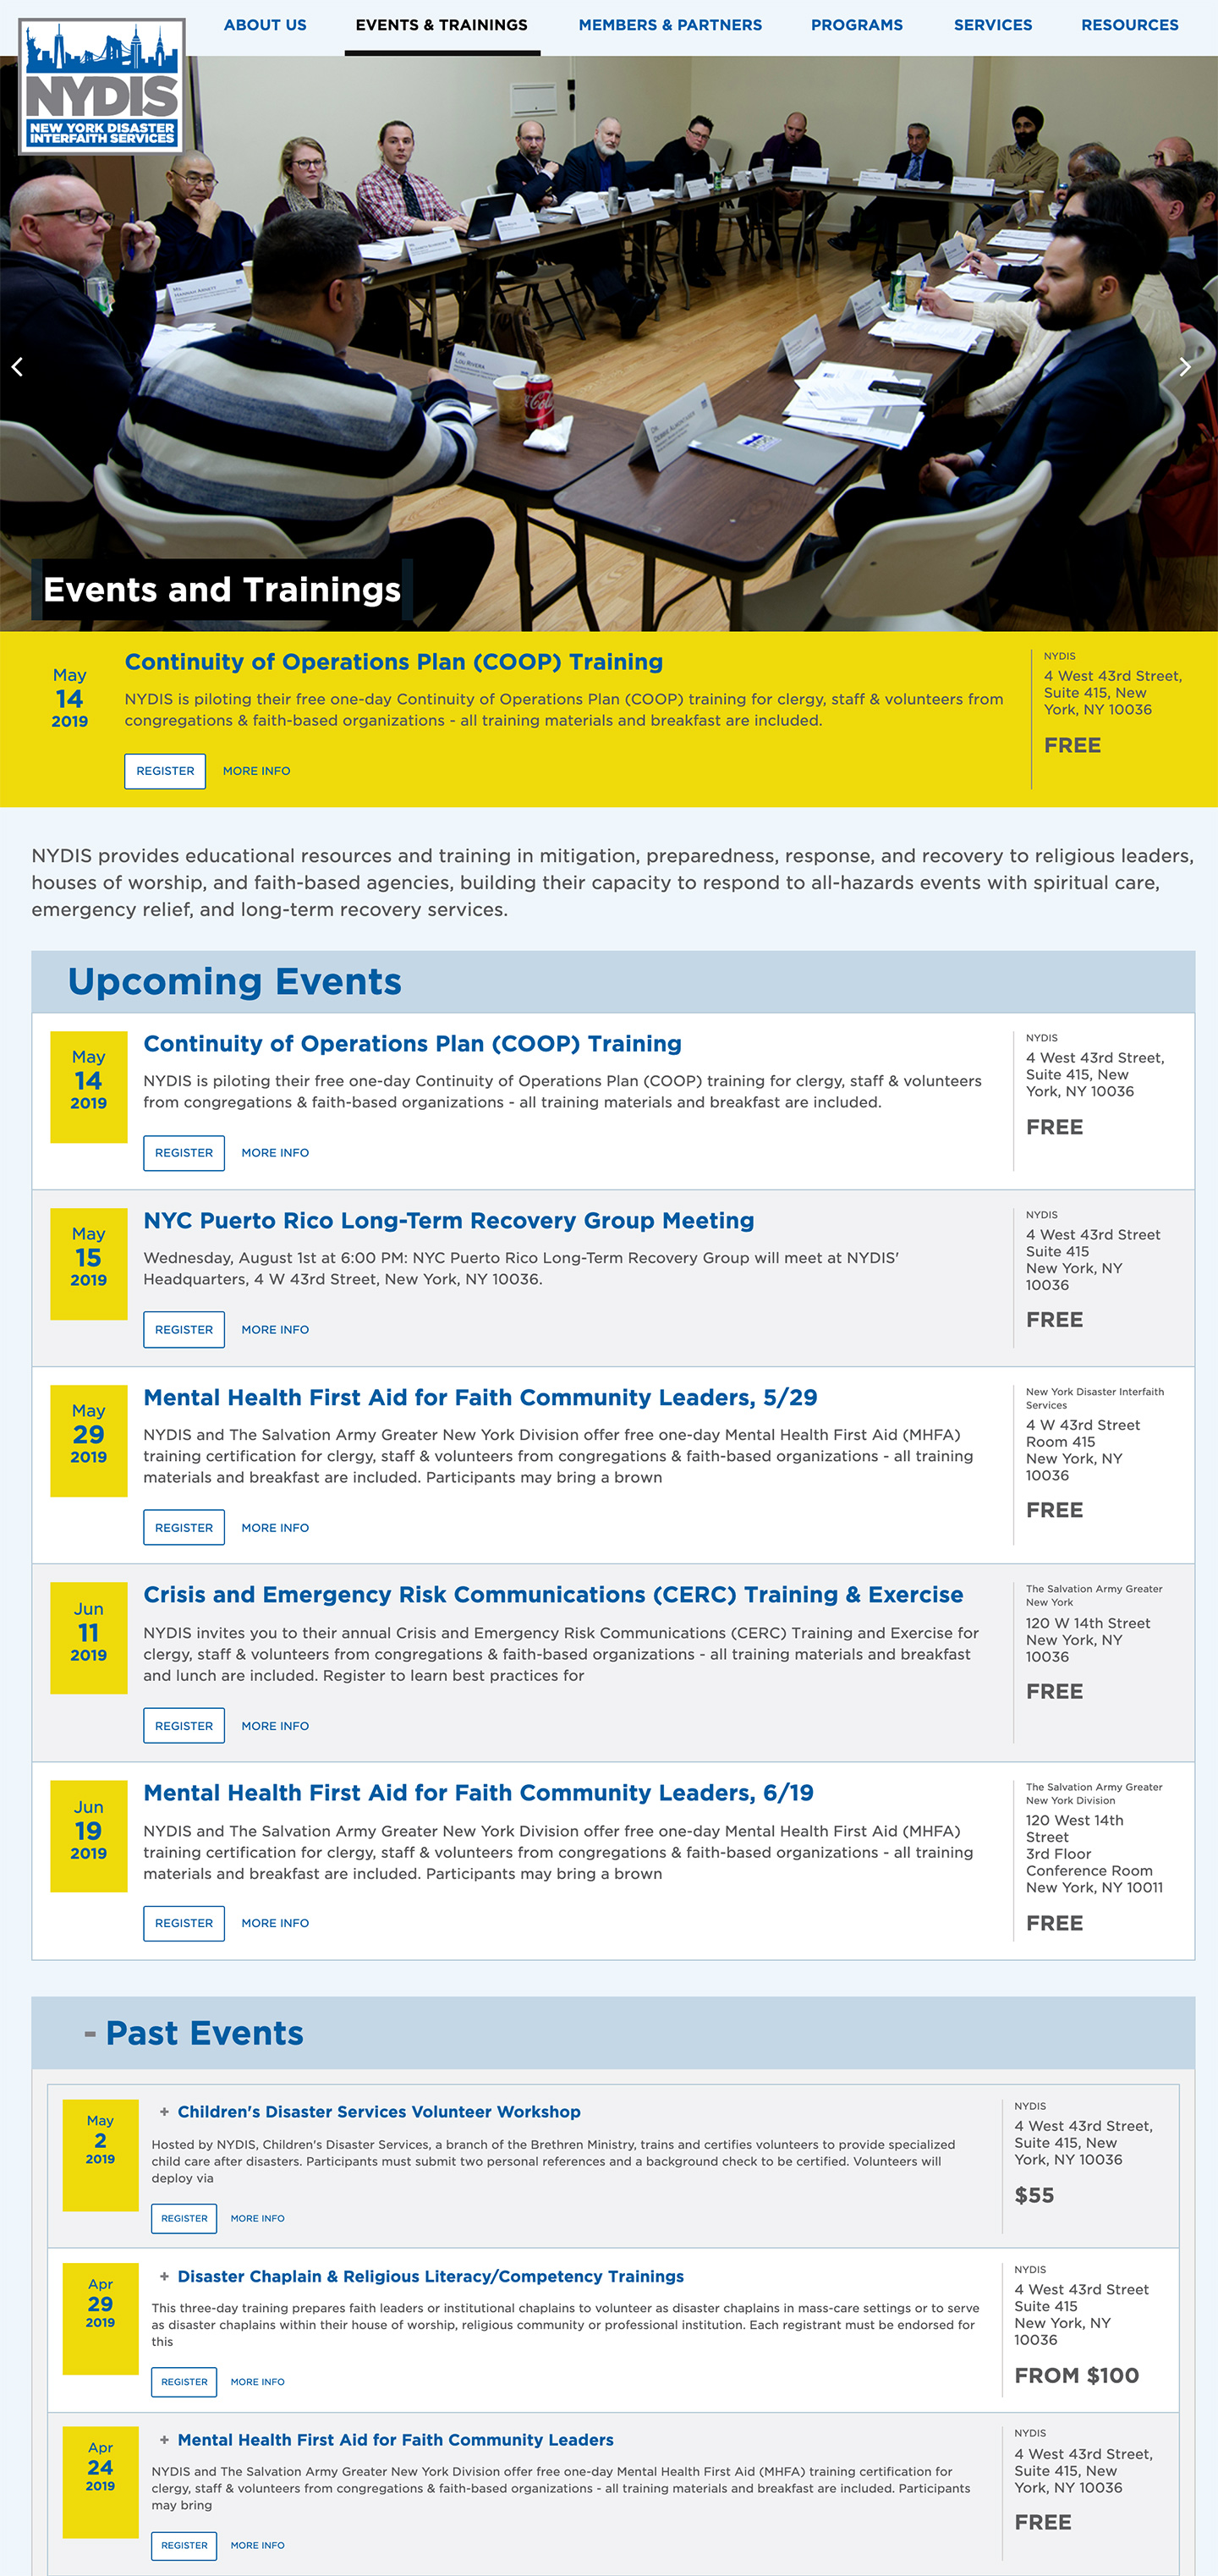 NYDIS: New York Disaster Interfaith Services: Automated Events Archive syncs with Eventbrite